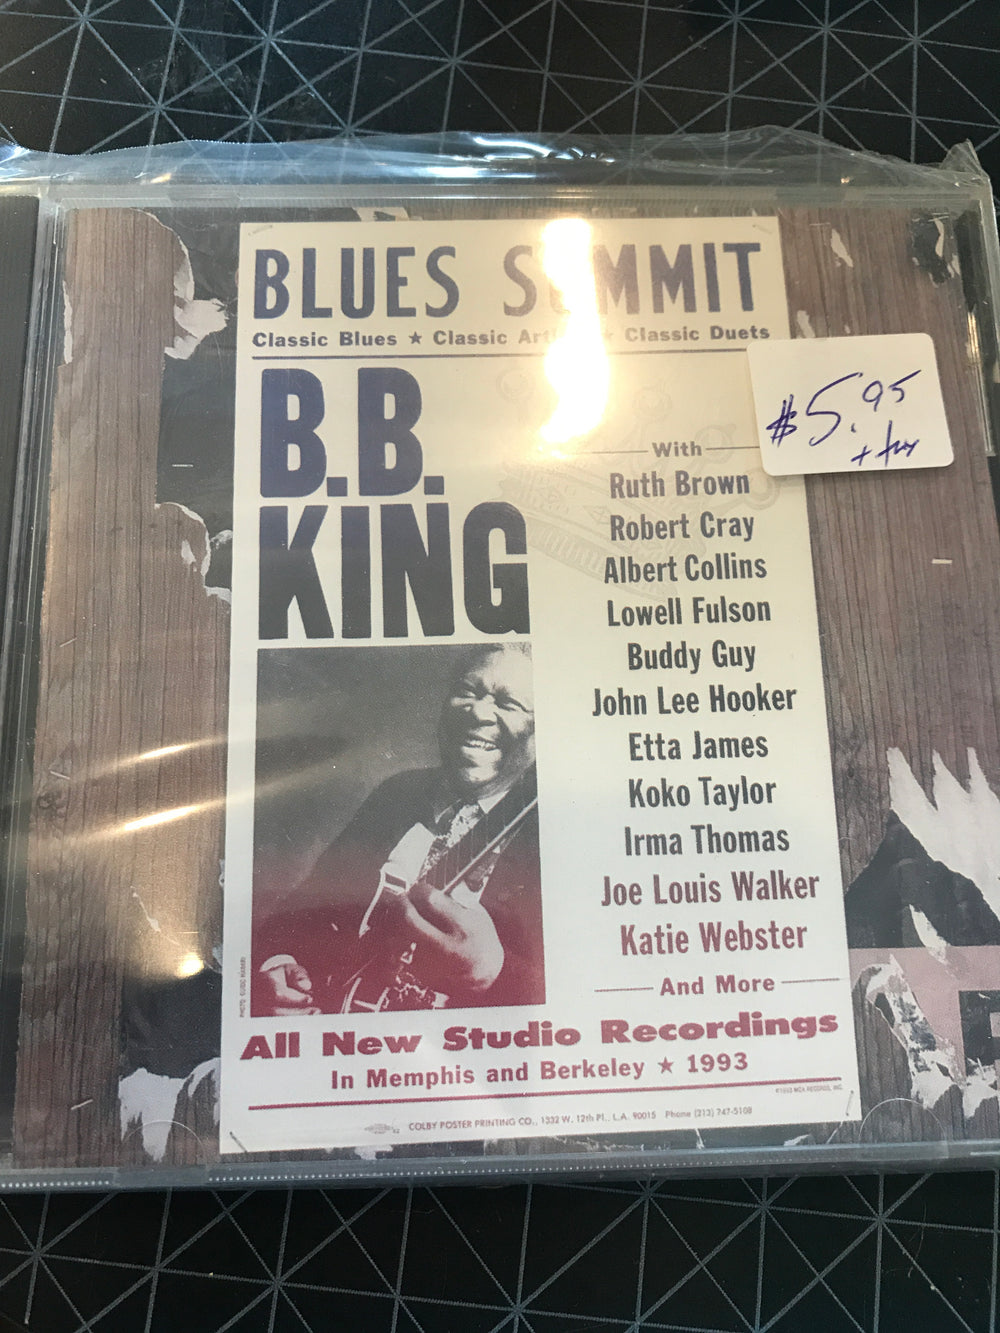 B.B. King - Blues Summit - Used CD